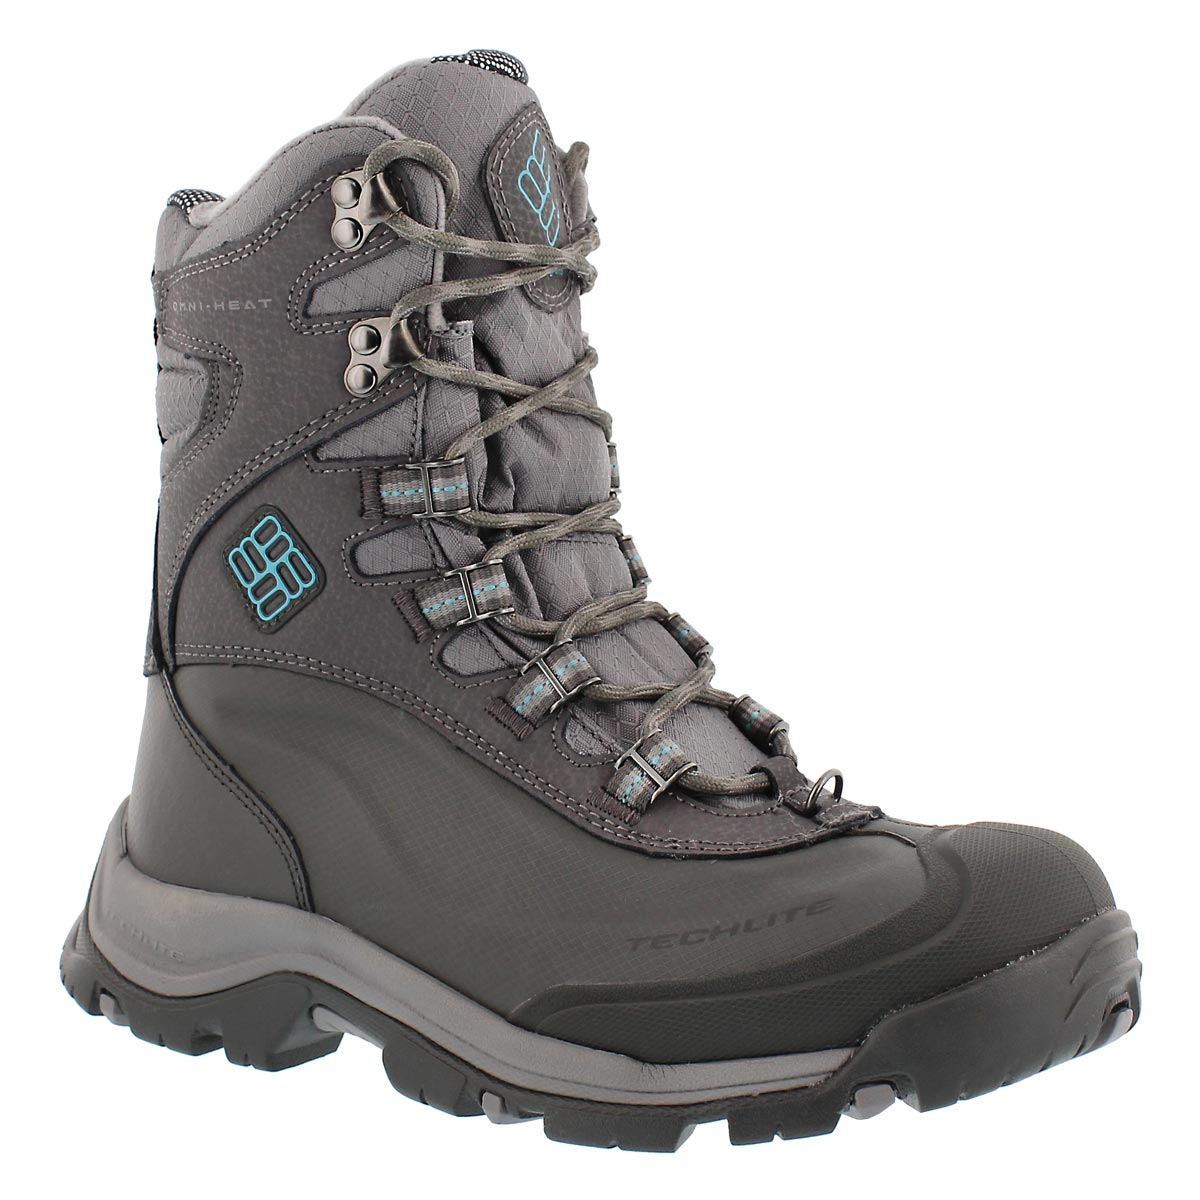 Women's BUGABOOT PLUS III shale winter boots